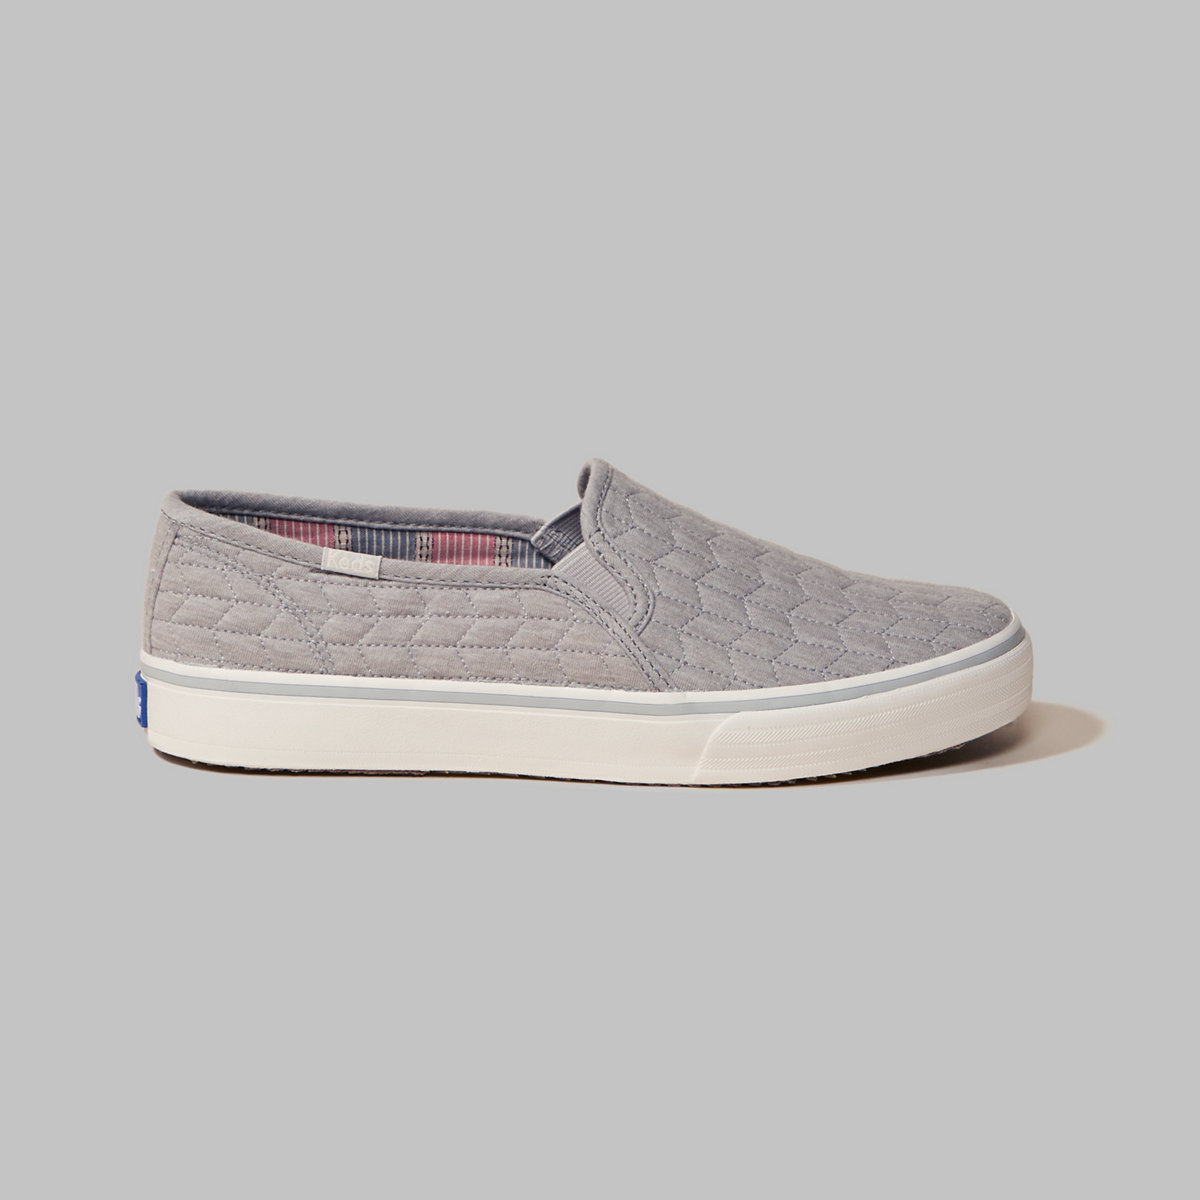 Keds Double Decker Quilted Jersey Sneakers